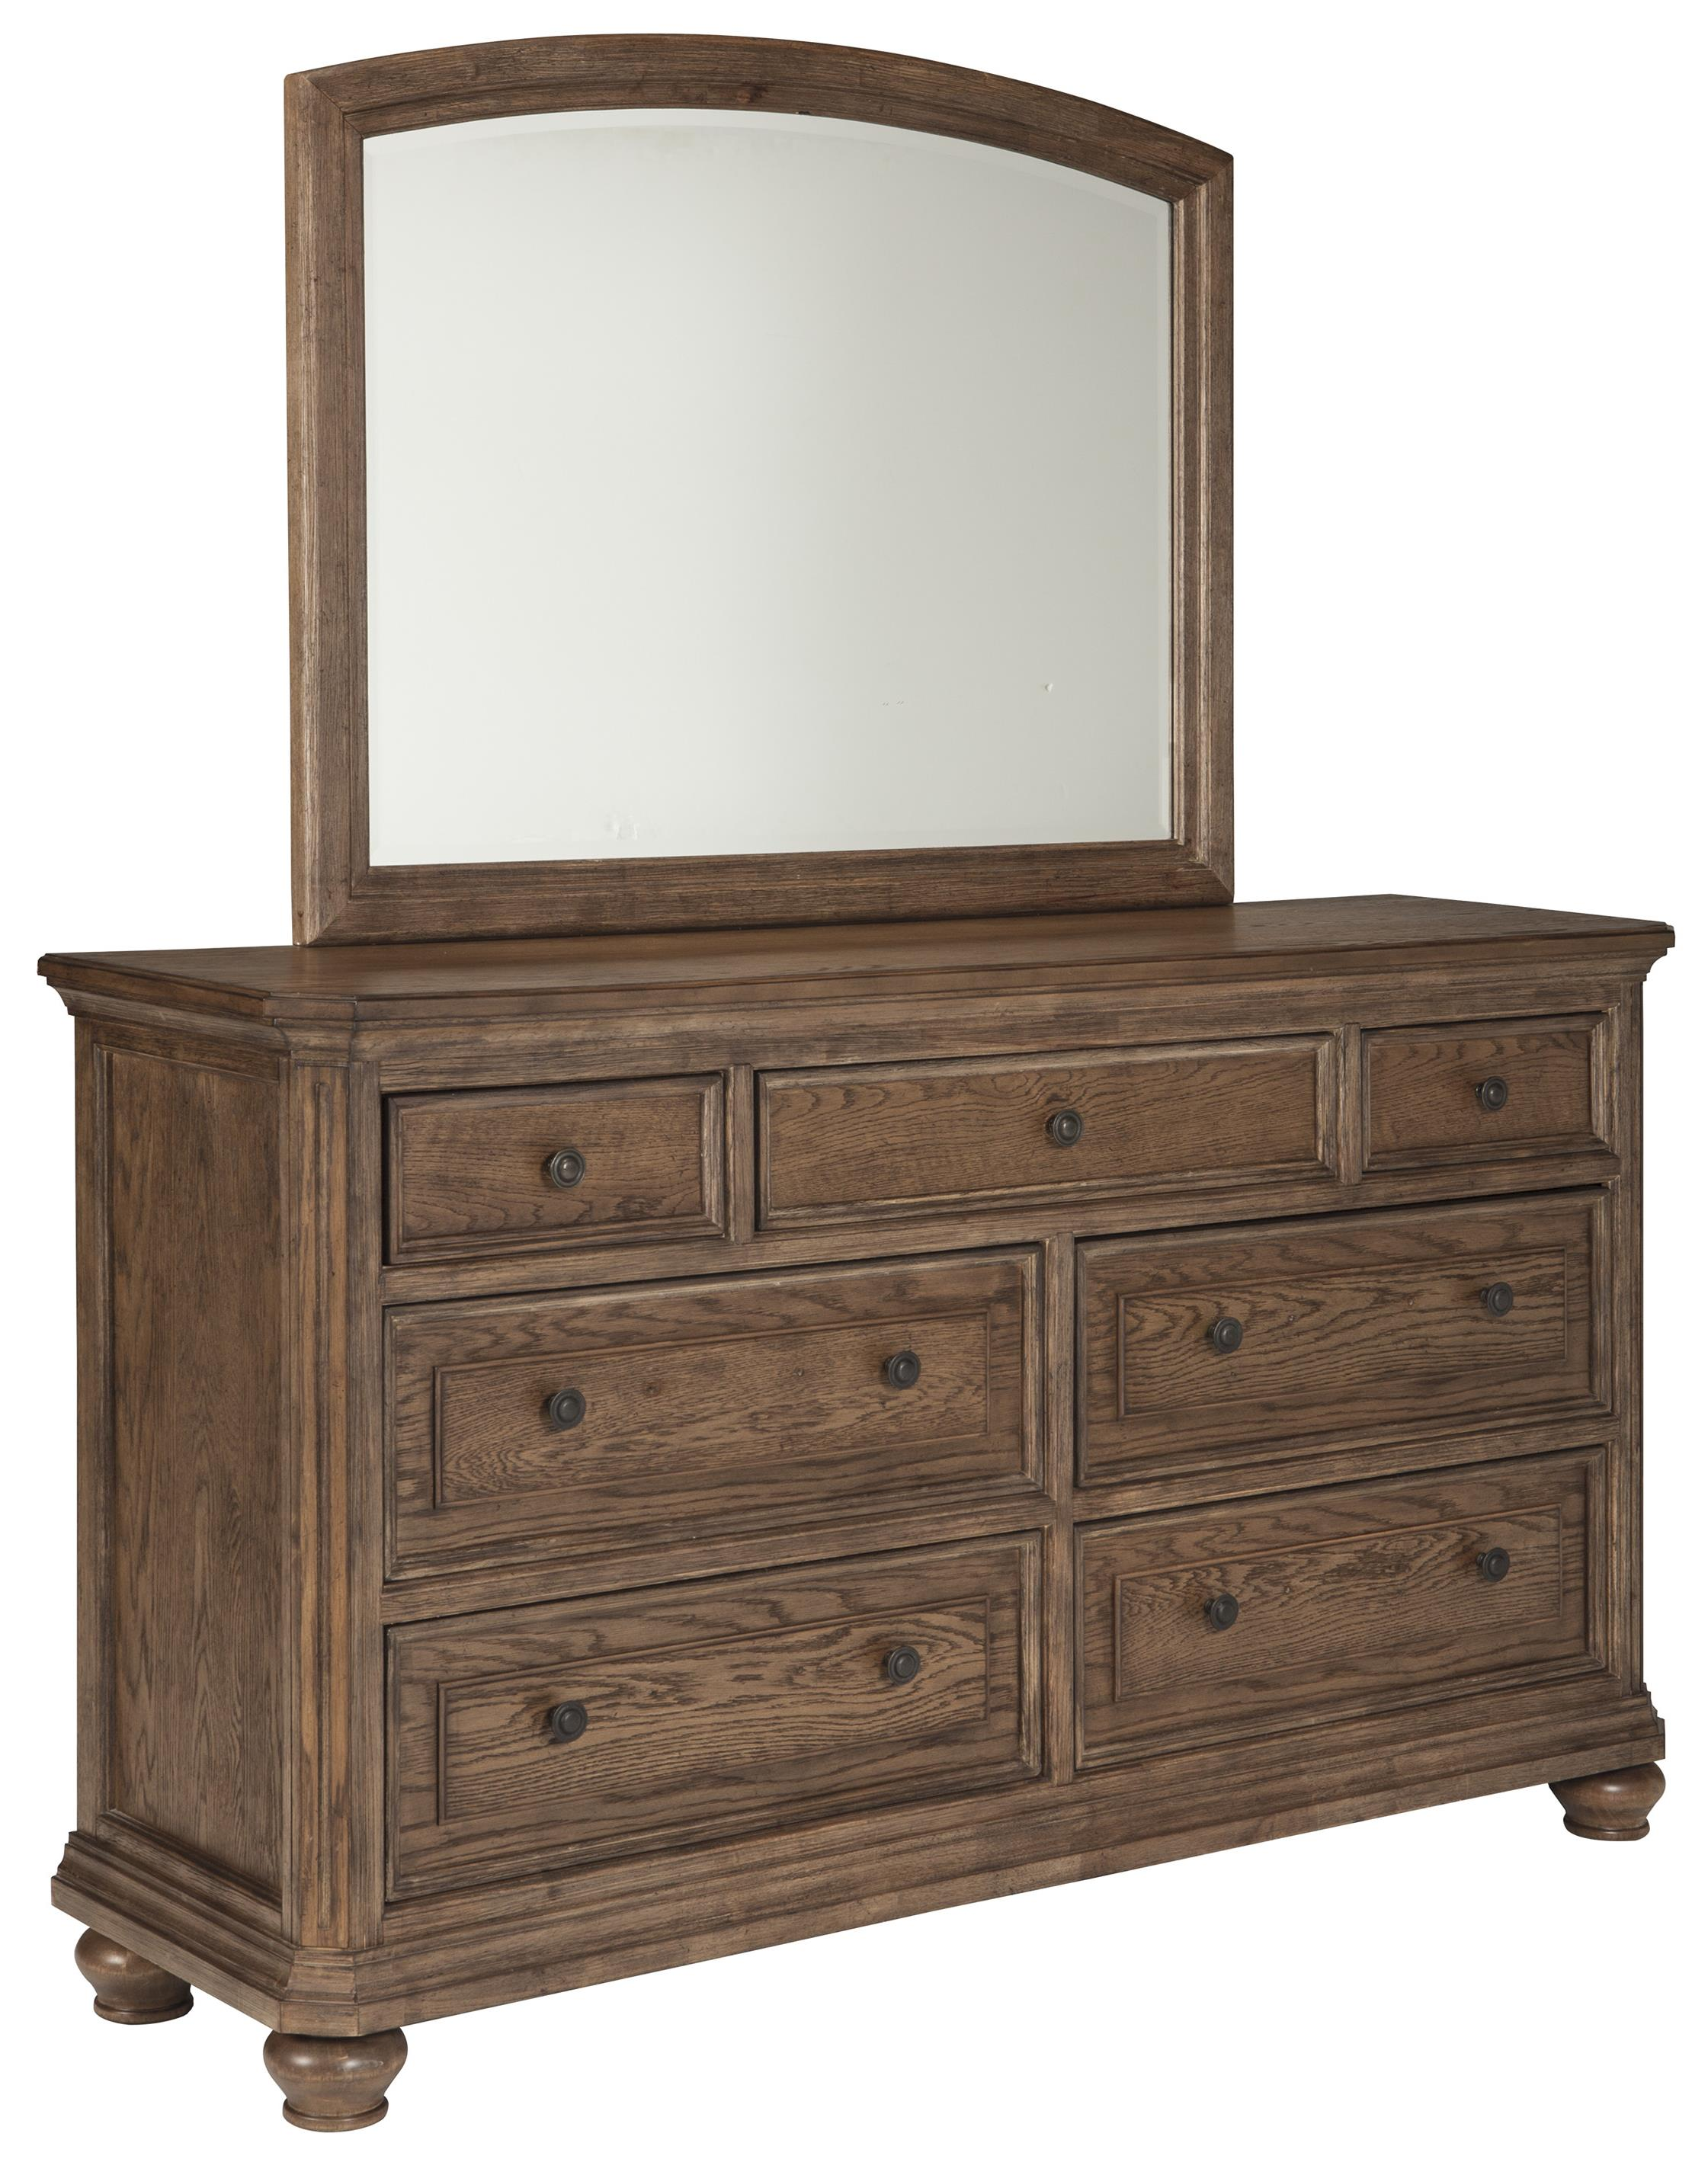 Signature Design by Ashley Maeleen Dresser & Bedroom Mirror - Item Number: B709-31+36